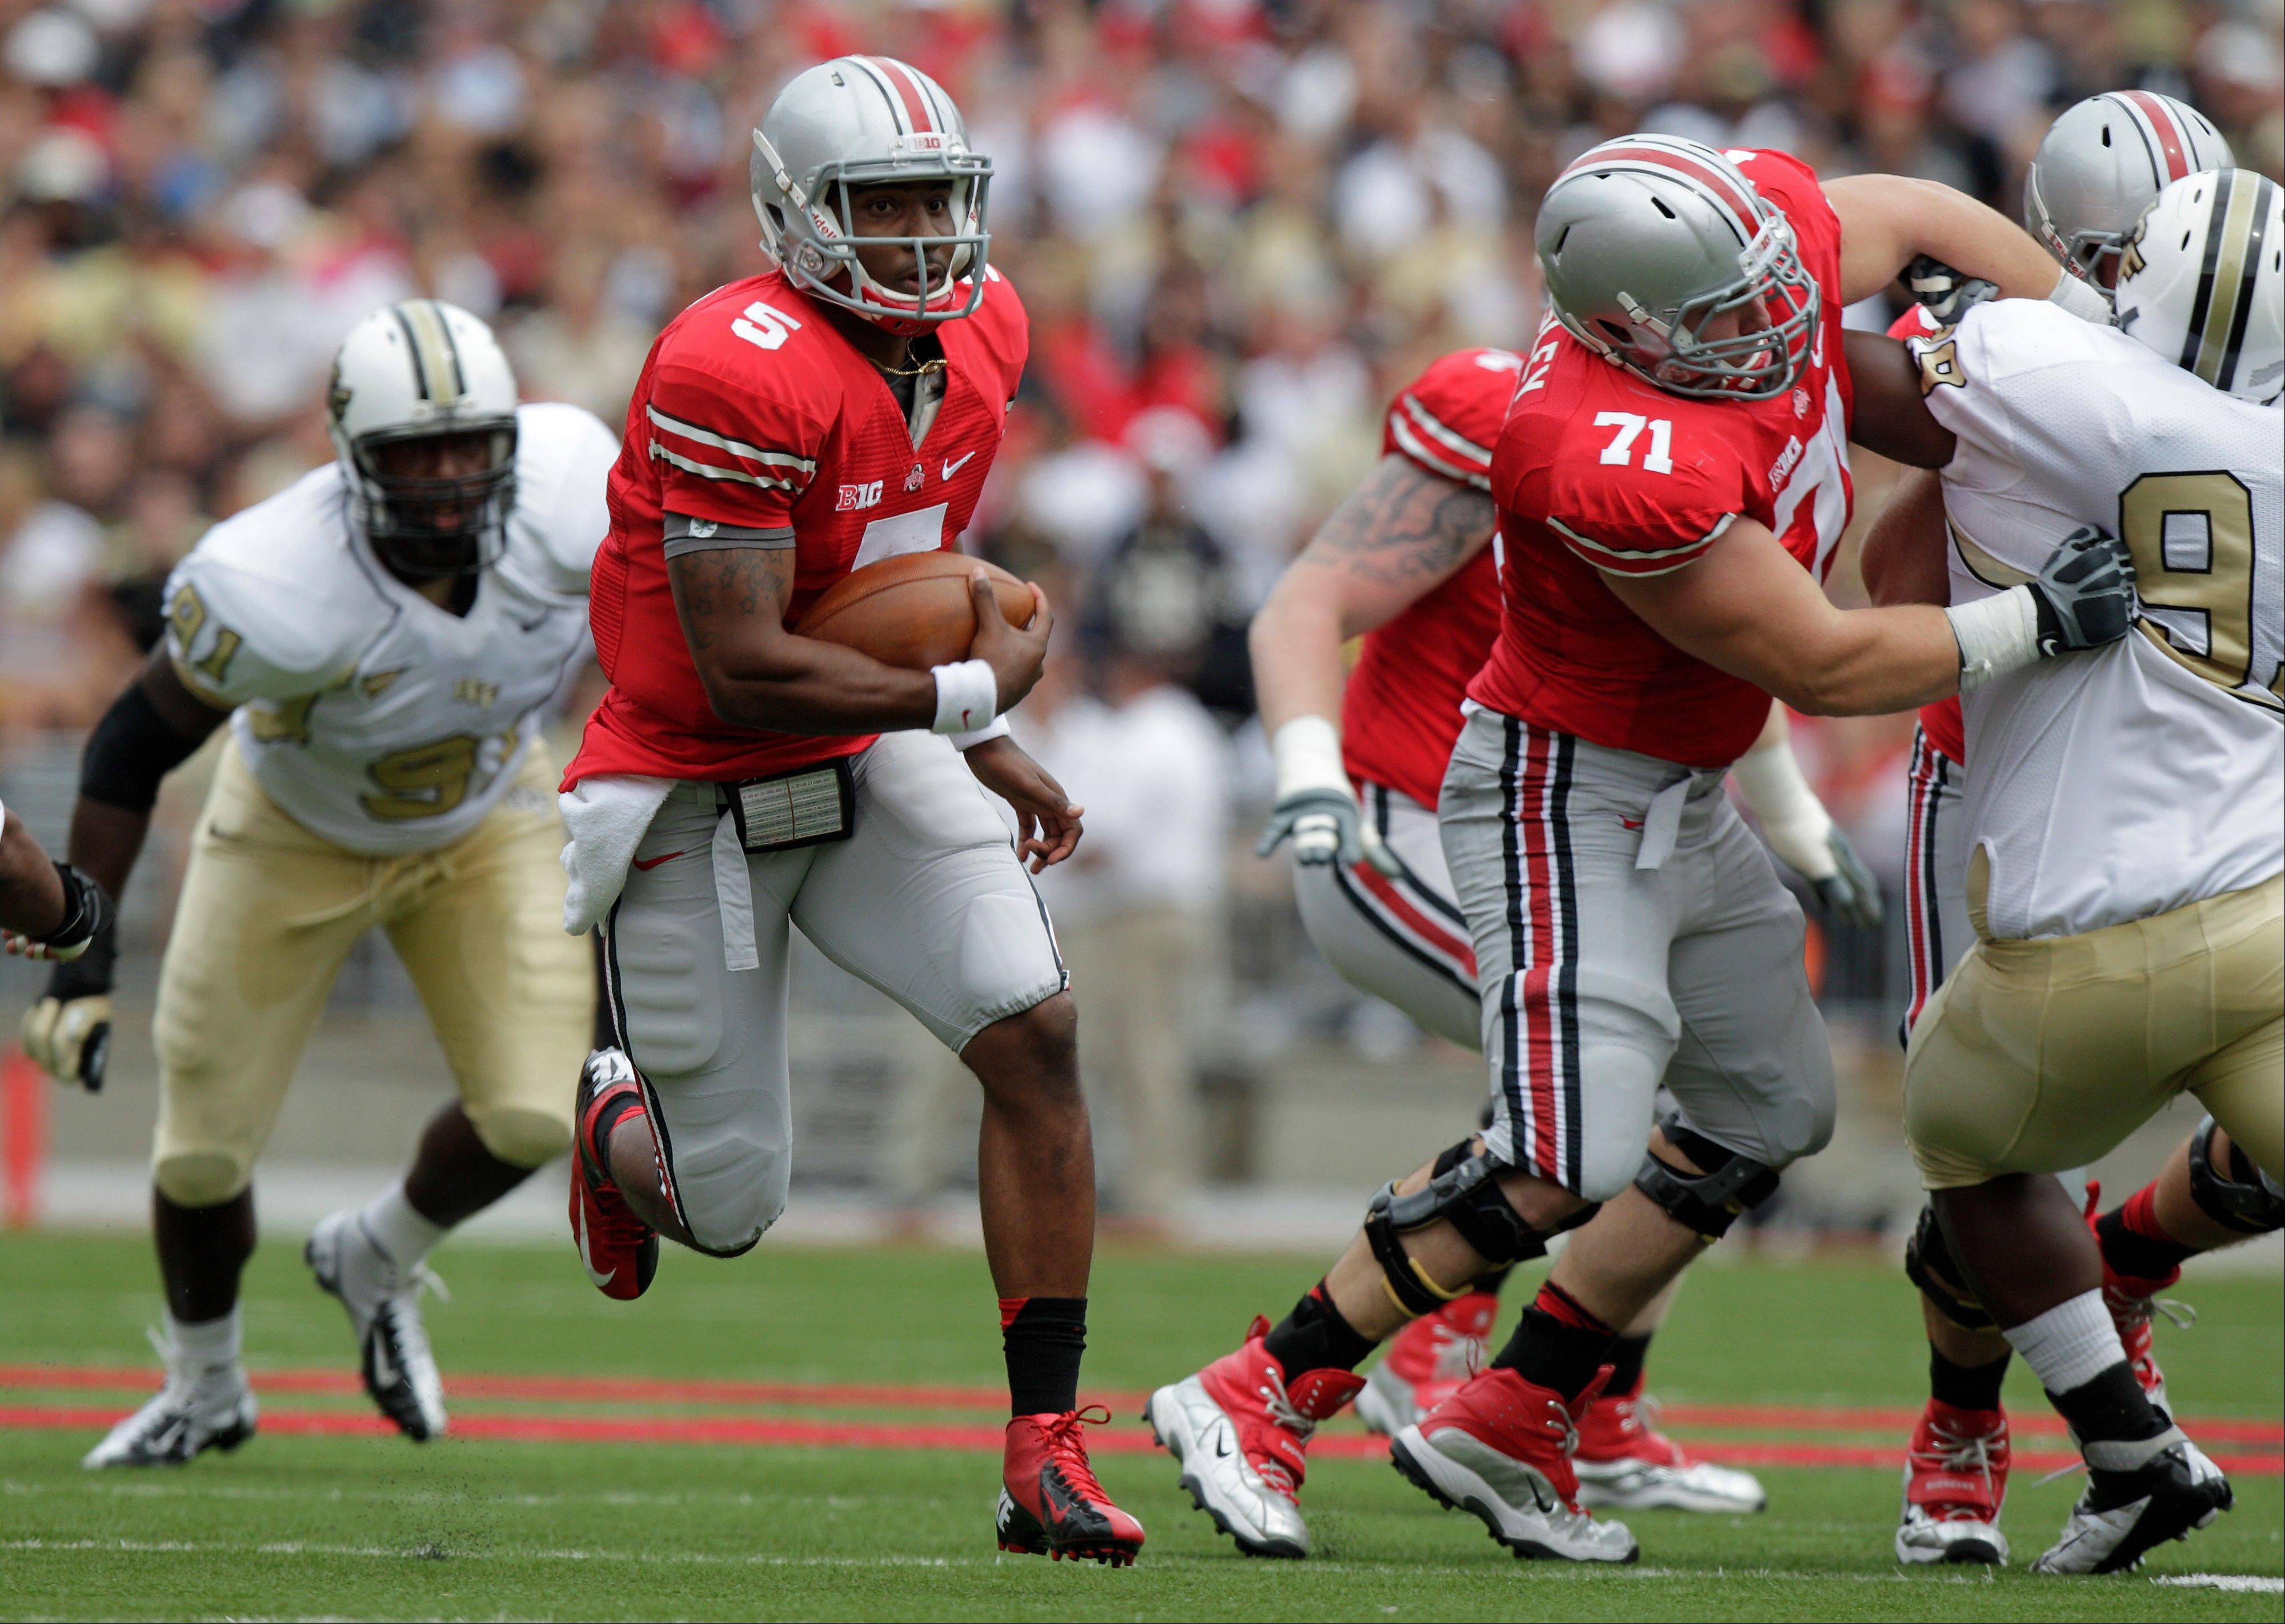 Ohio State's Braxton Miller (5) breaks away from Central Florida players on his way to a touchdown during the first quarter Saturday in Columbus, Ohio.